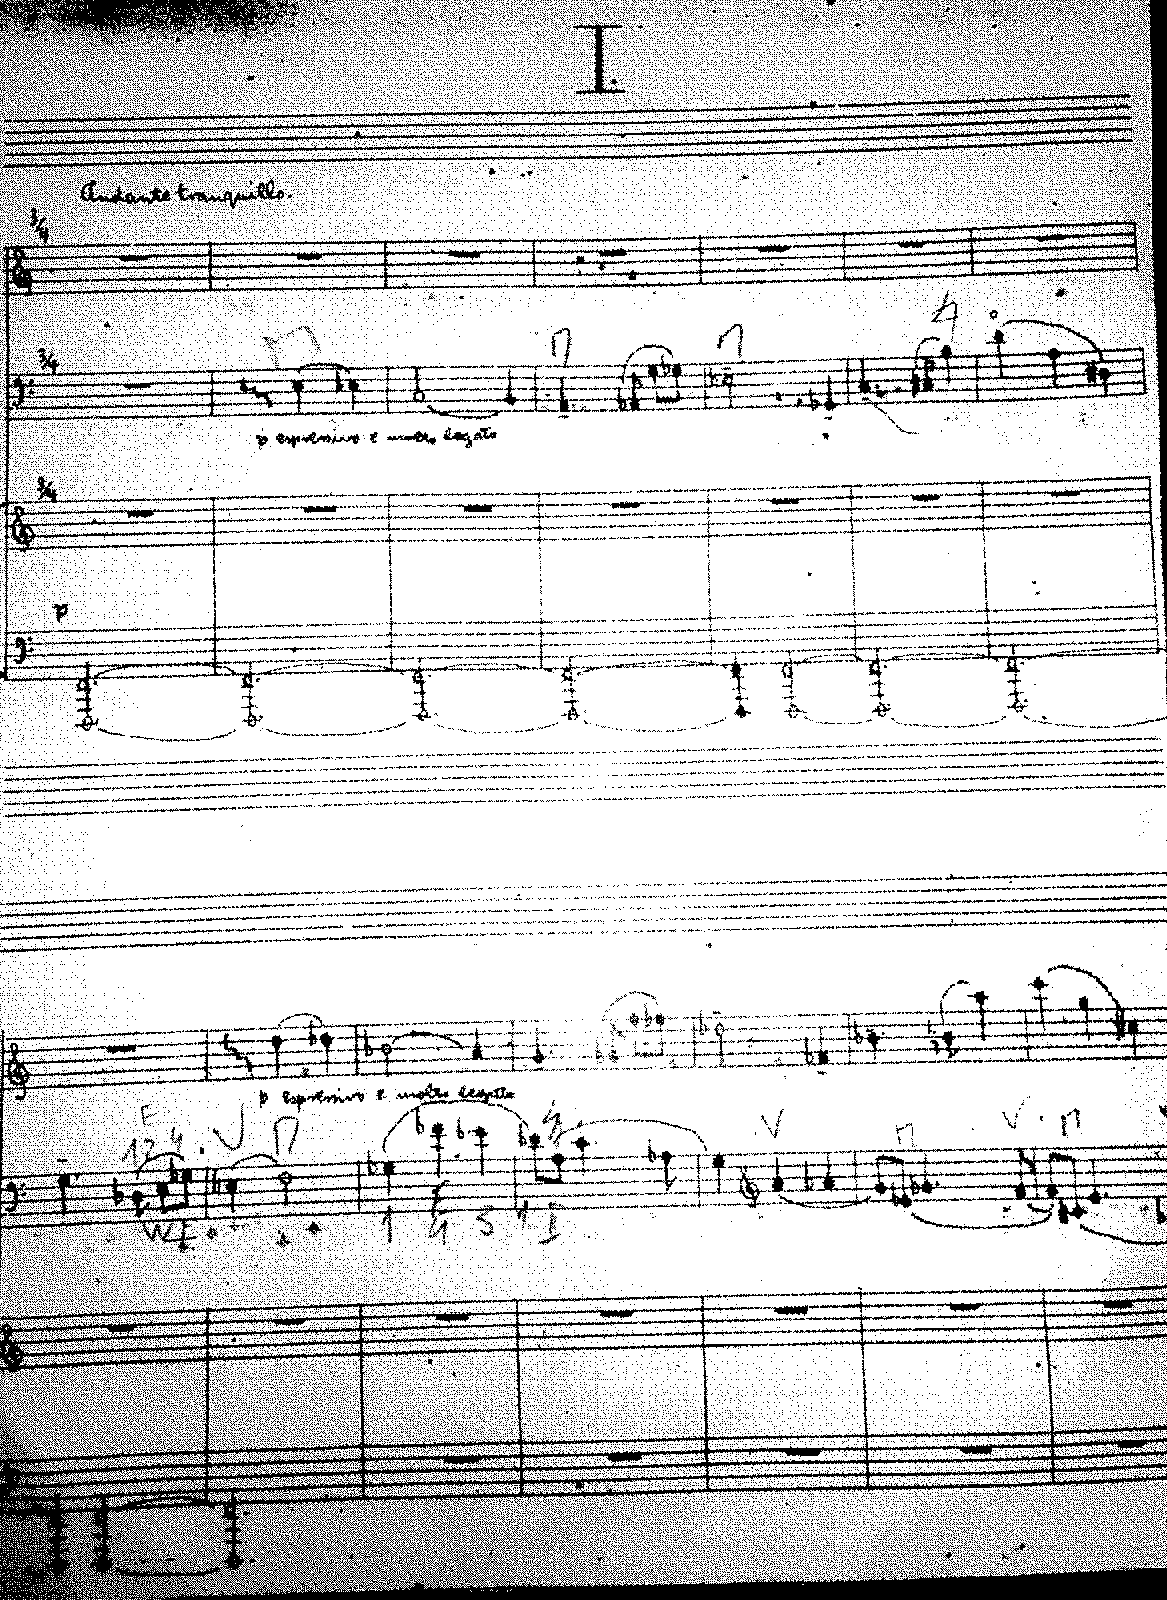 PMLP679603-Hermann - Piano trio (manuscript).pdf